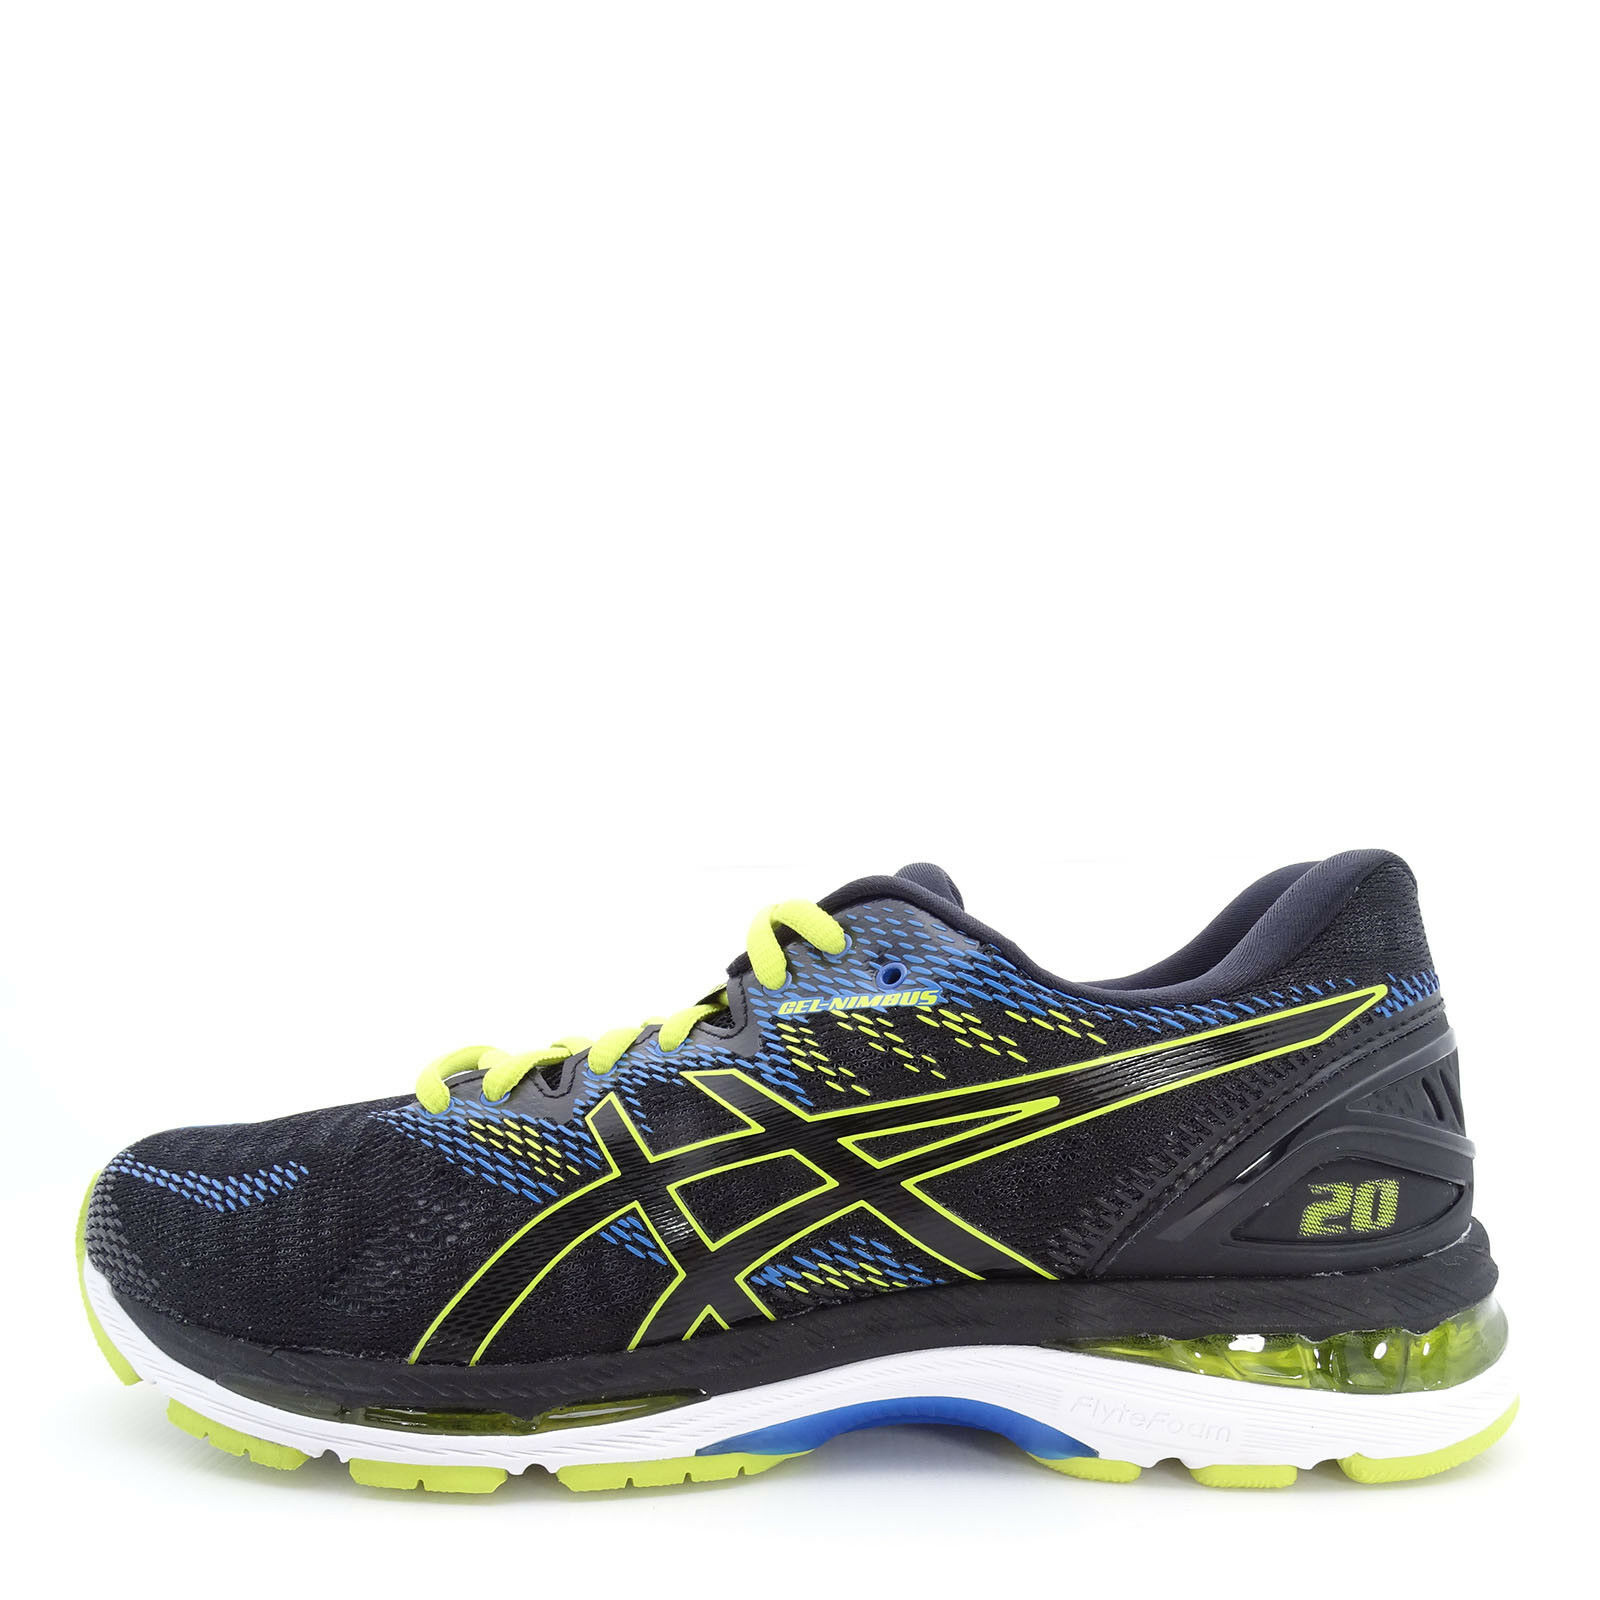 Asics GEL-Nimbus 20 [T800N-9089] Men Running shoes Black Sulphur Spring